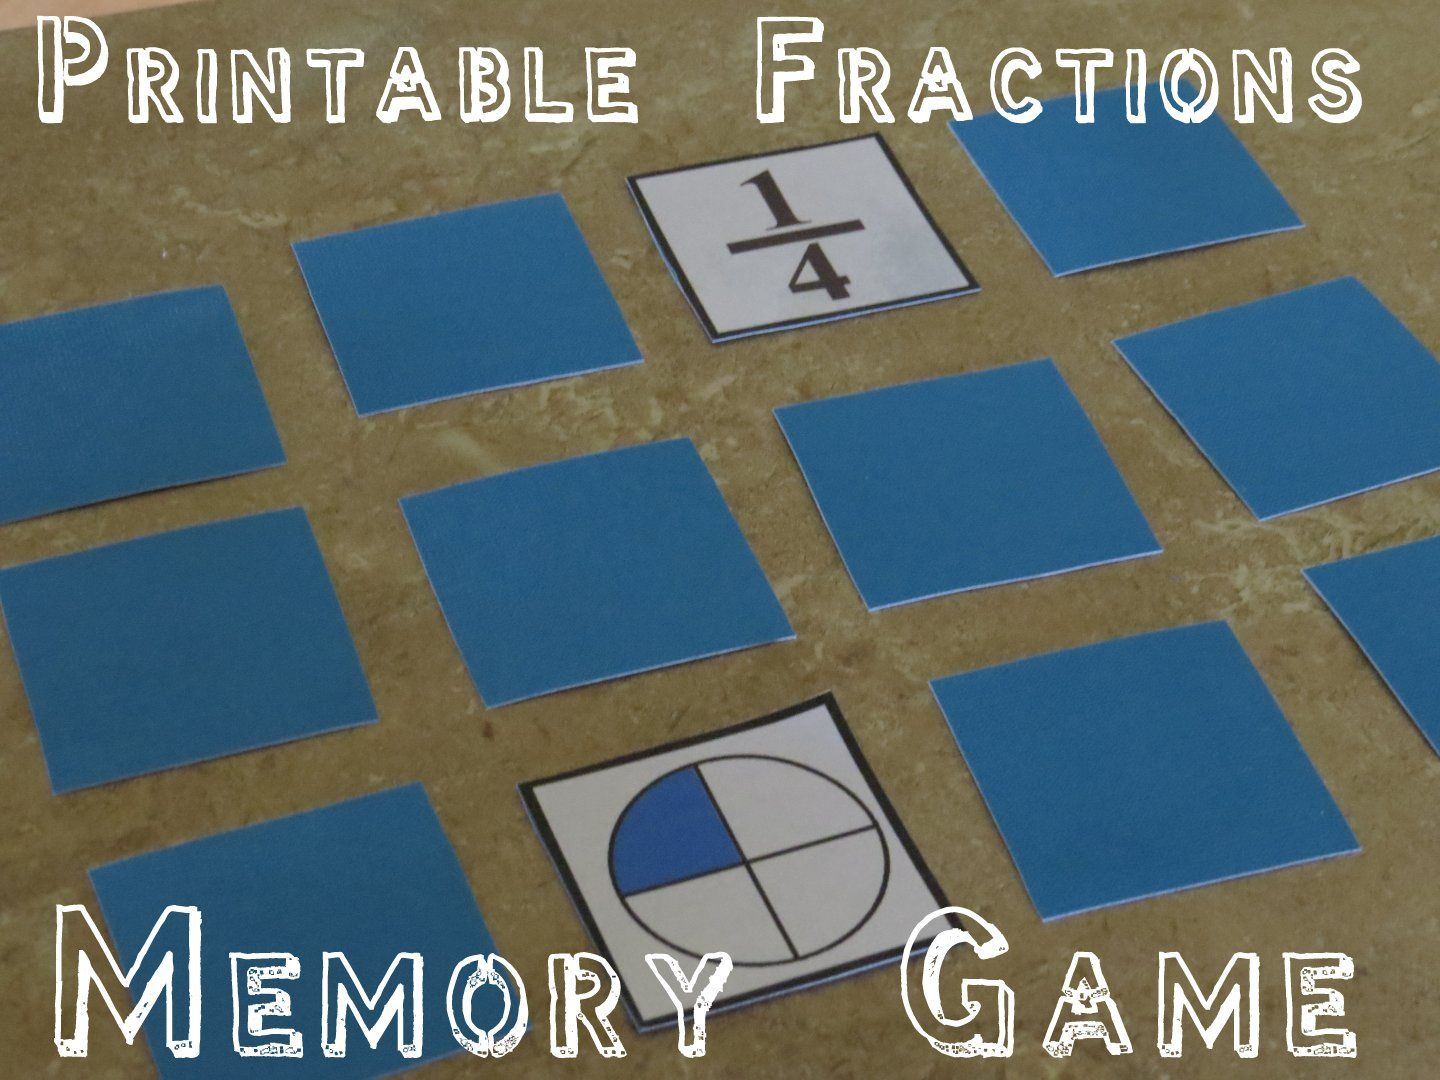 Printable Fraction Game Pieces